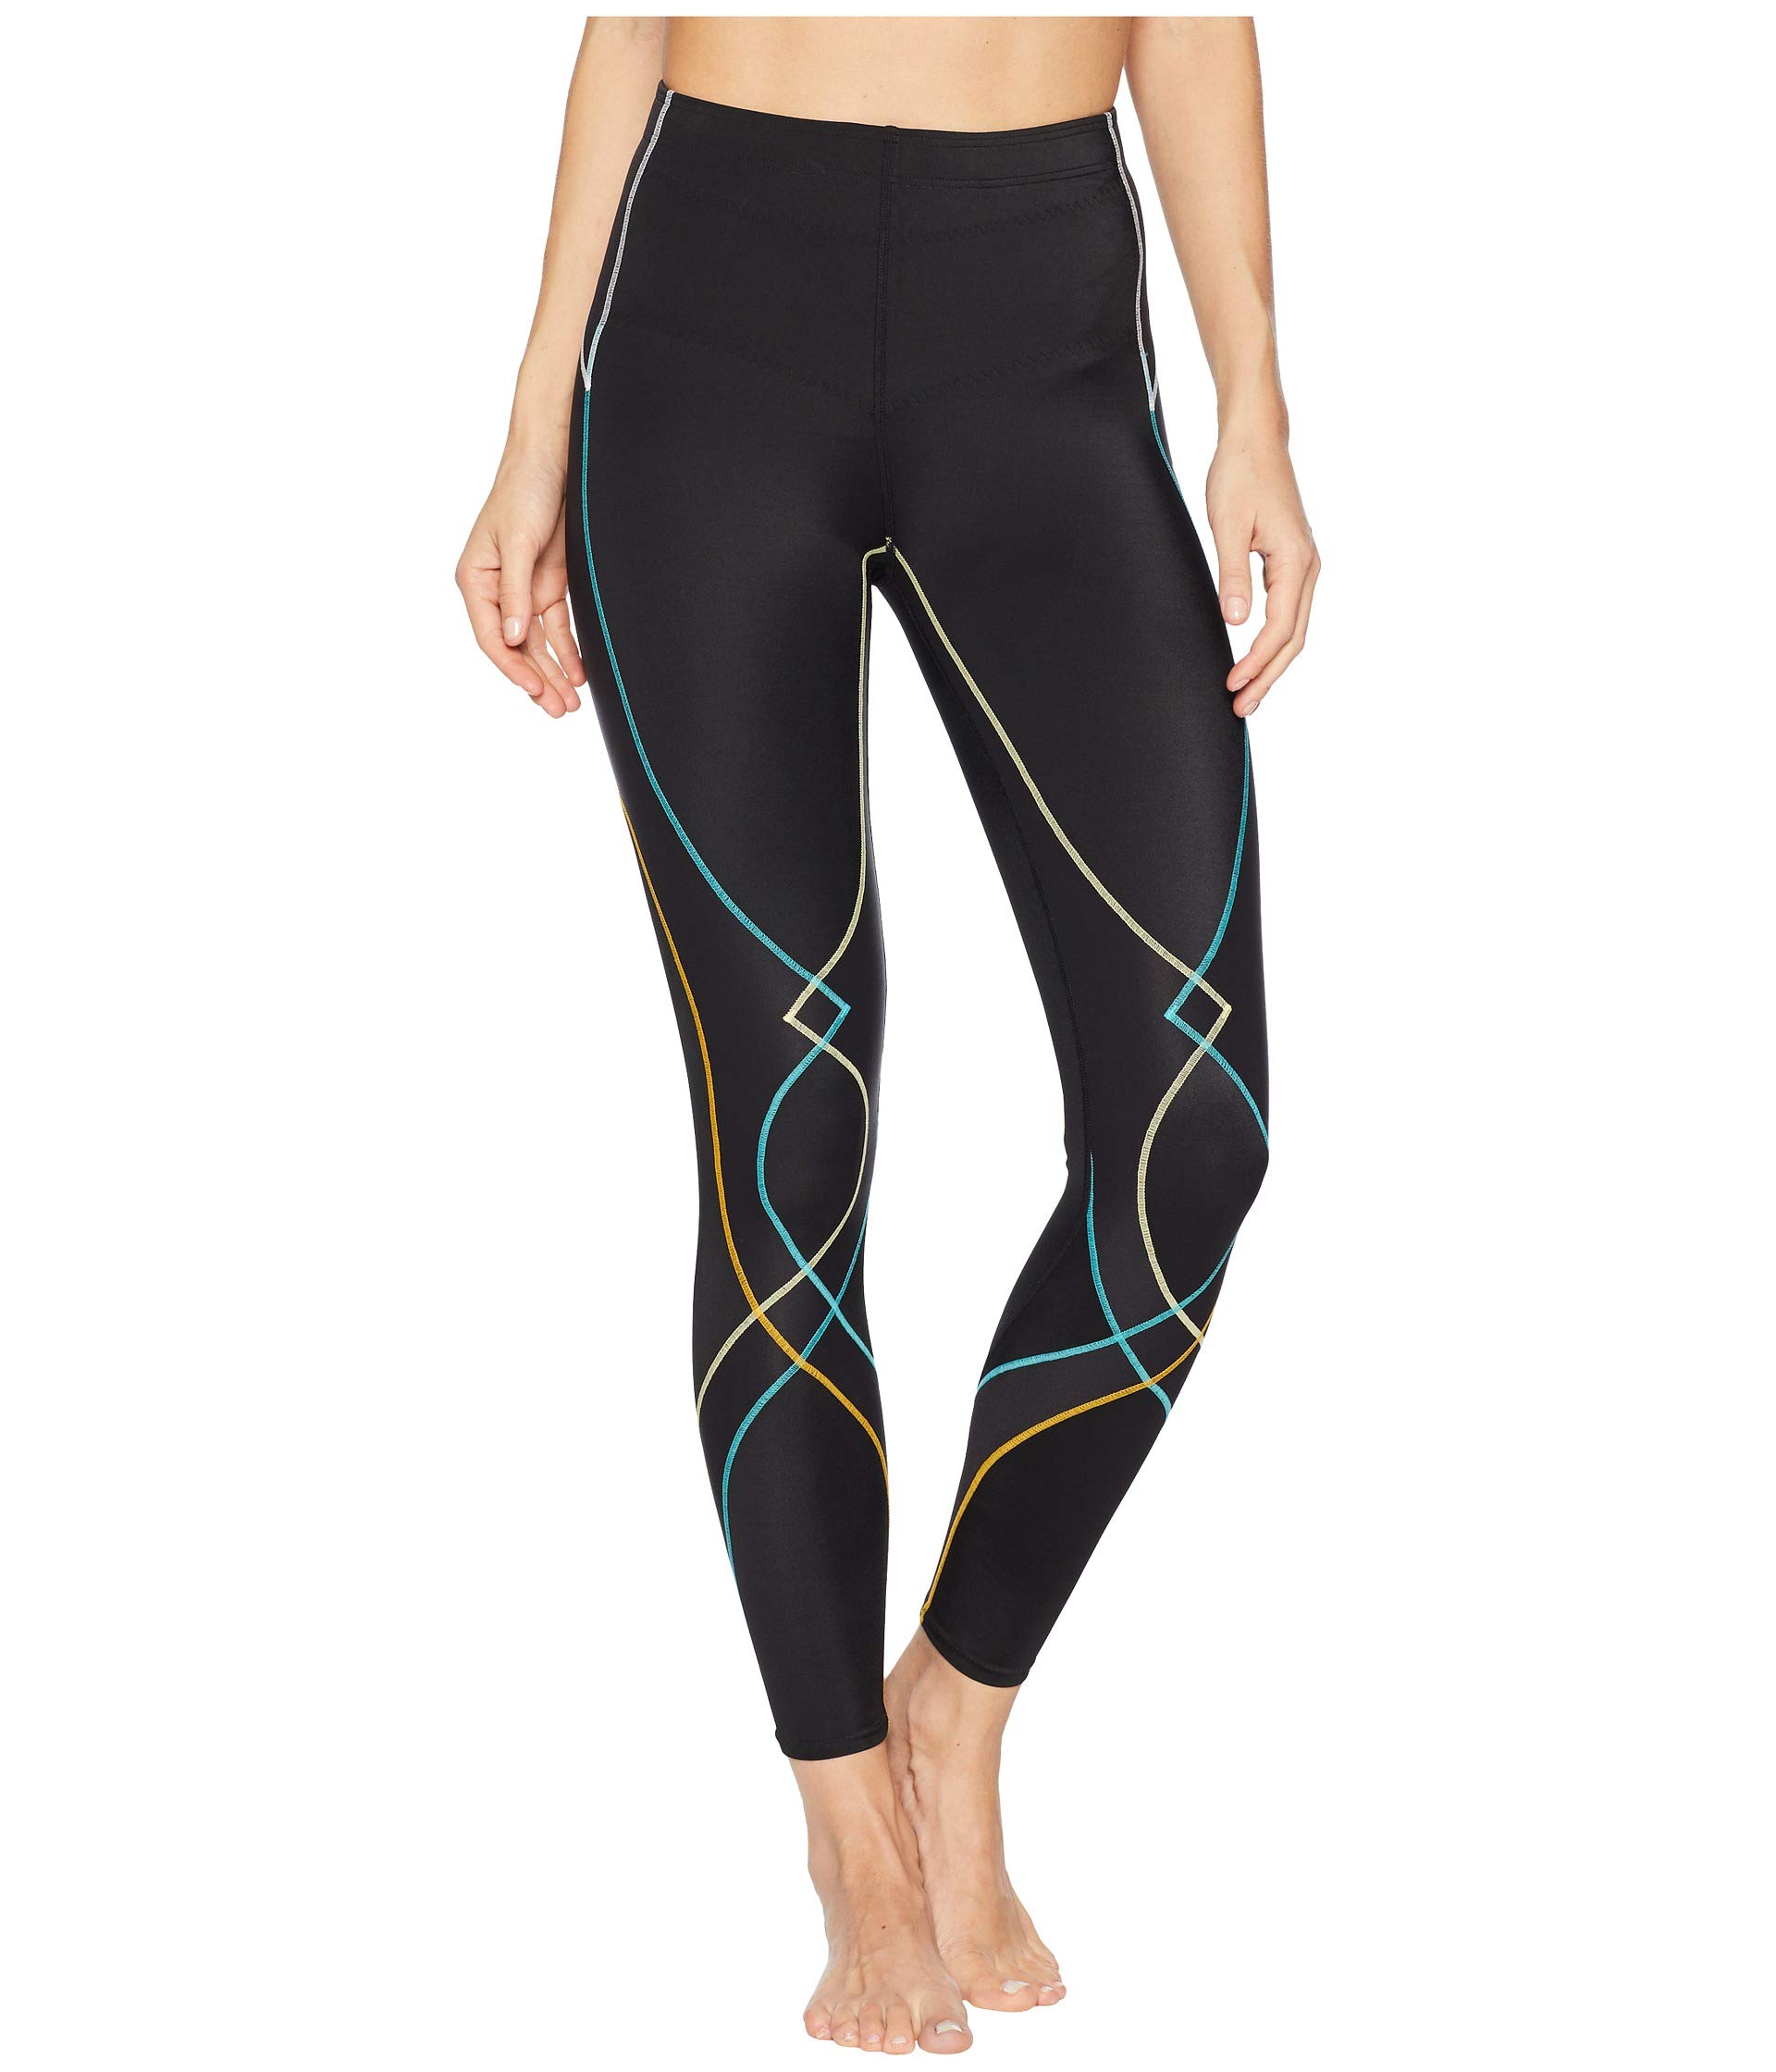 CW-X Women's Stabilyx Joint Support Compression Tight, Black/Bright Rainbow, X-Small by CW-X (Image #1)